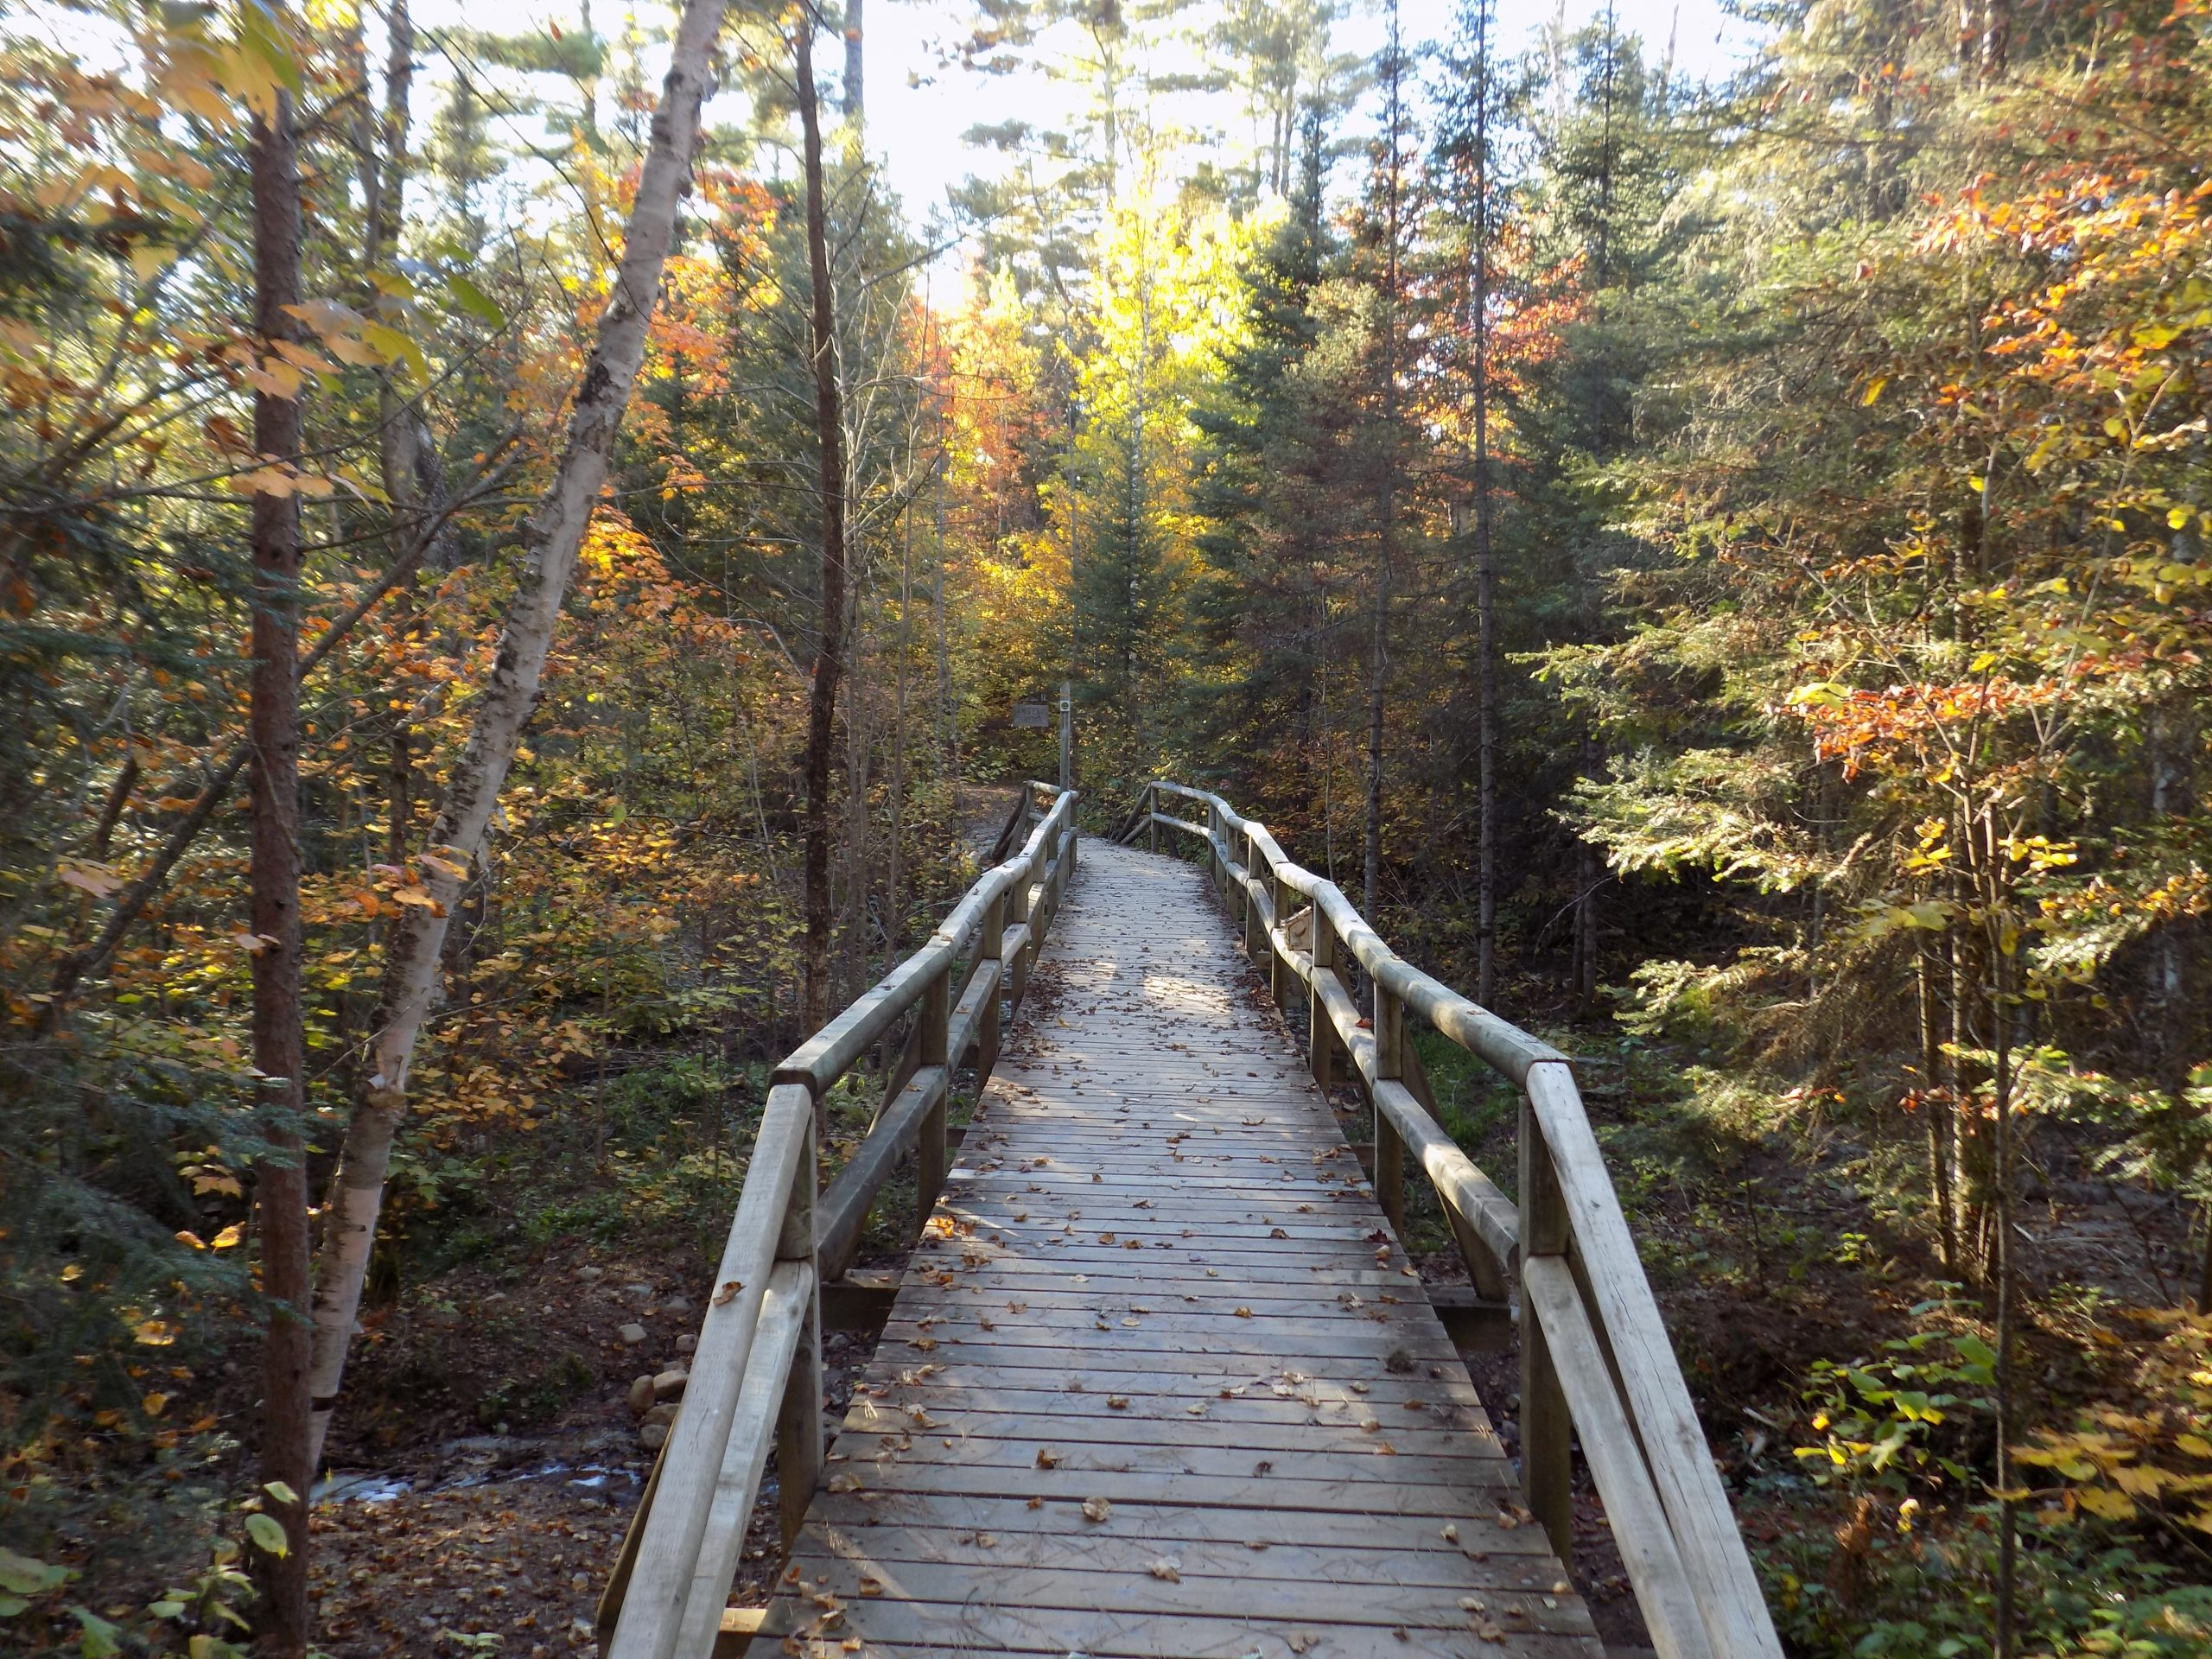 YMCA family camps offer opportunities to hike north wood trails in the fall